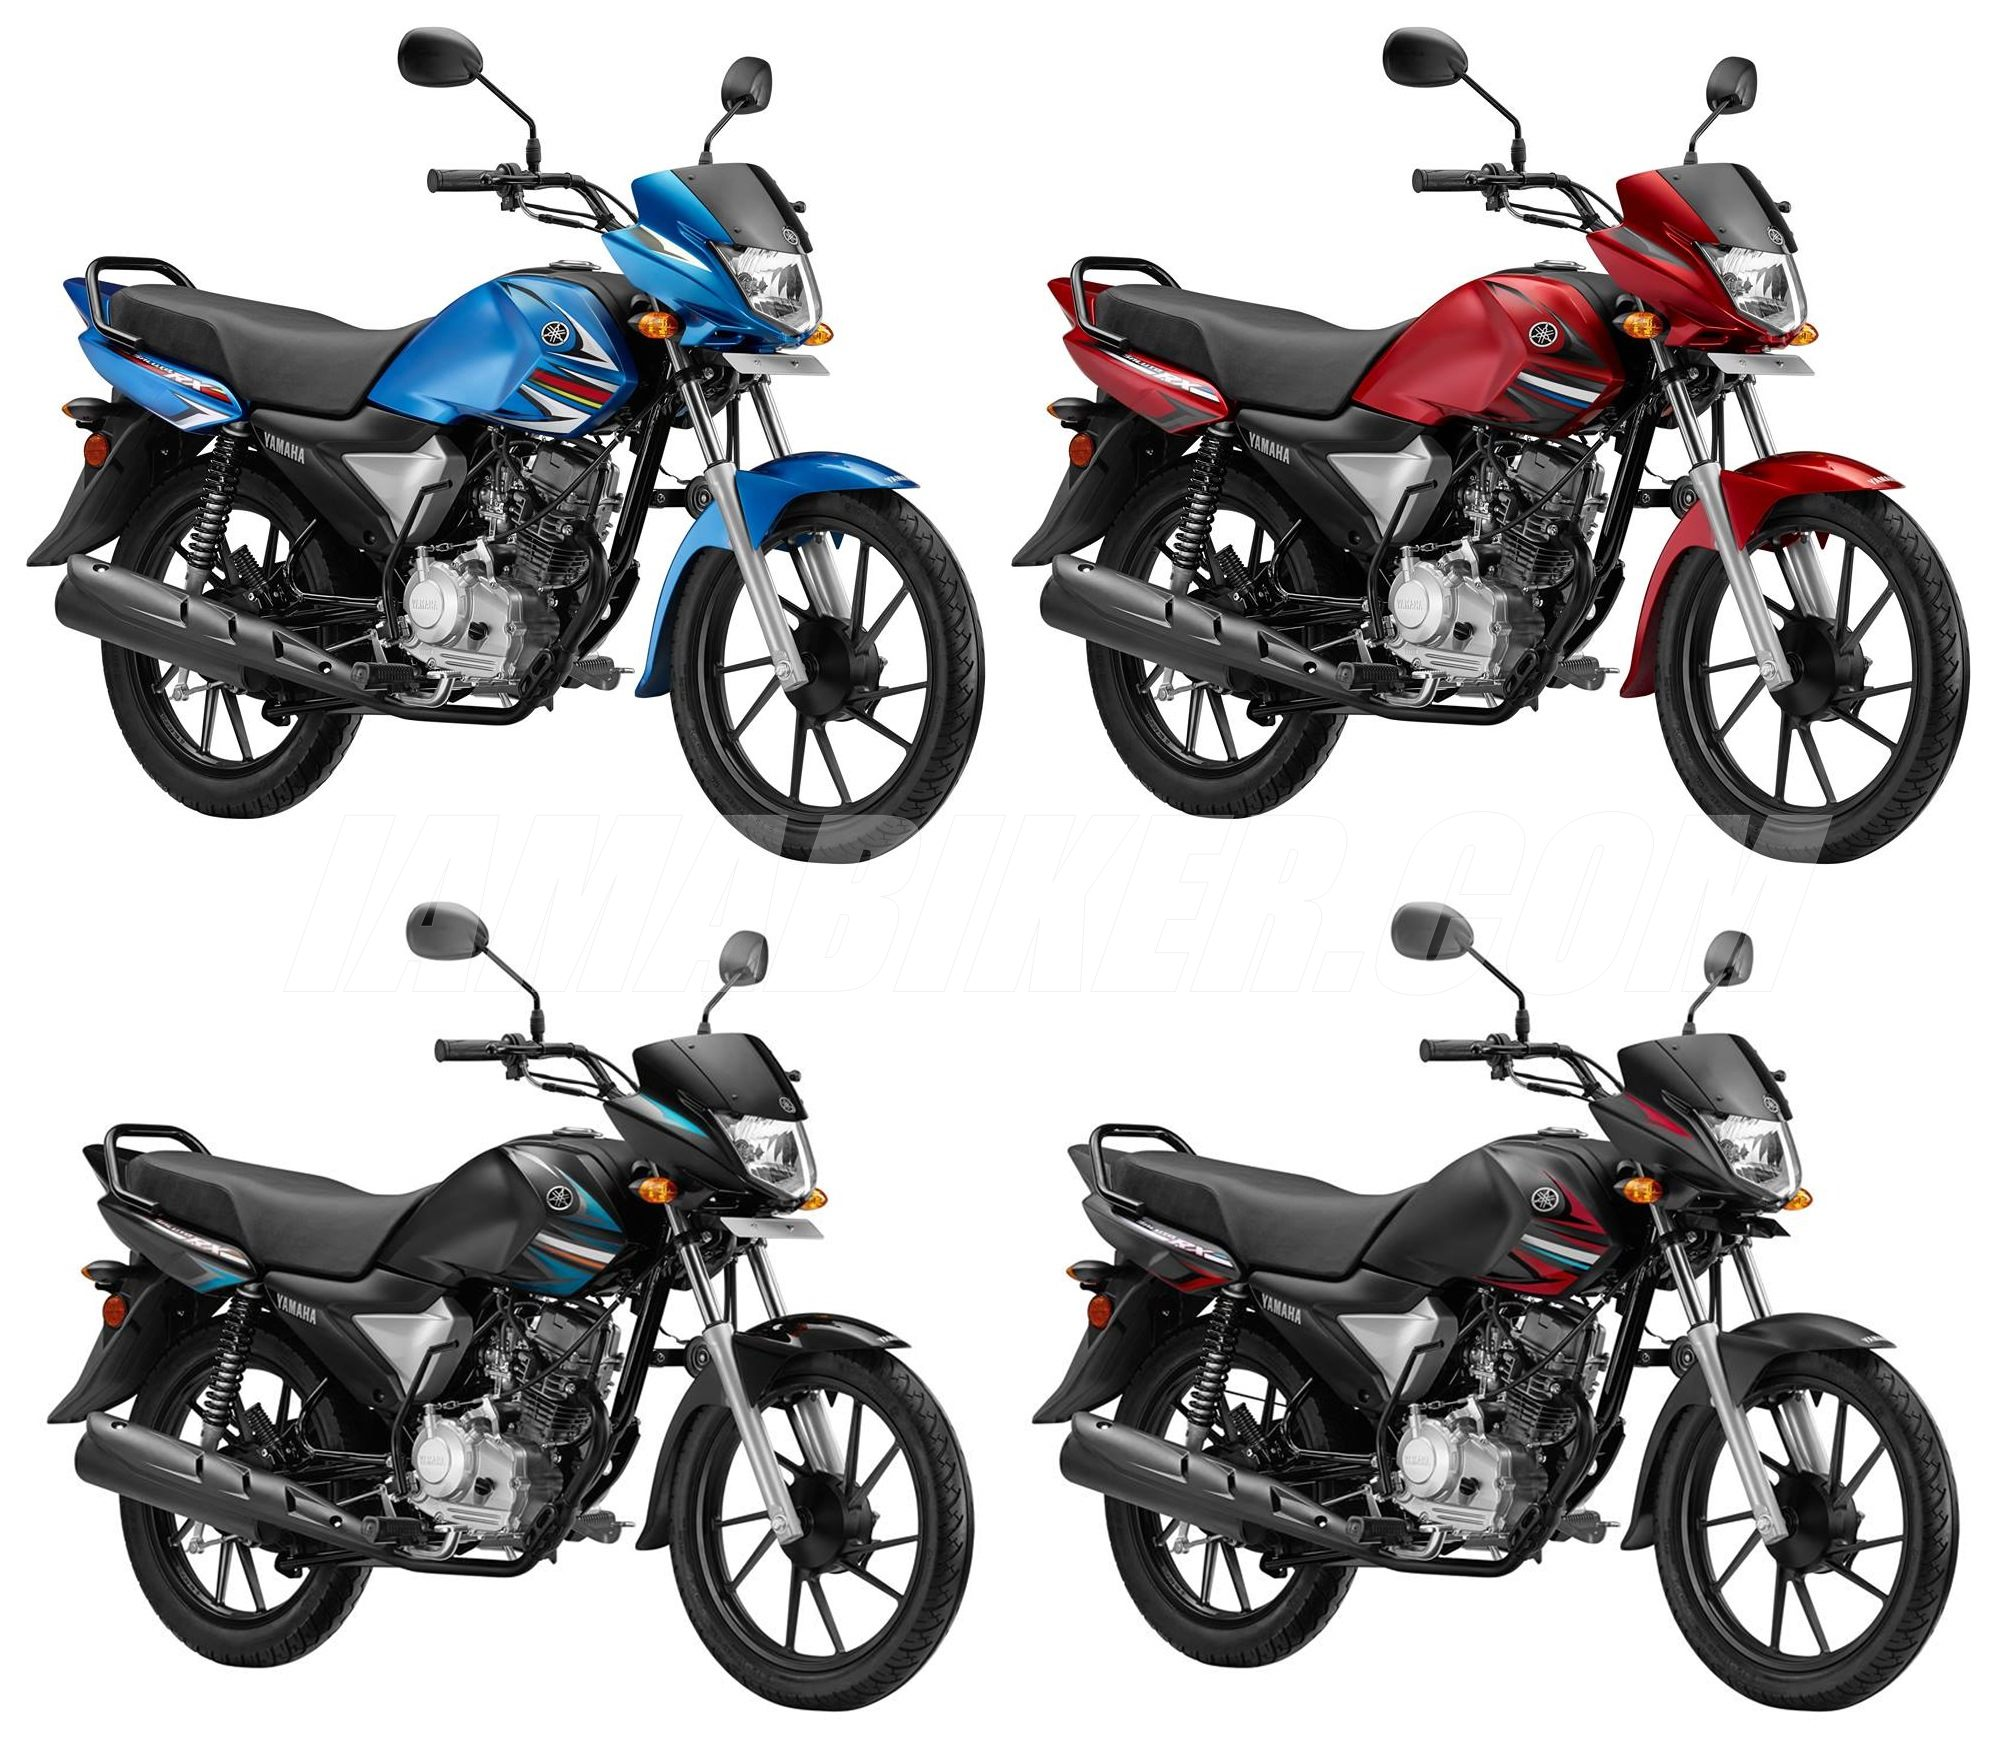 Yamaha Saluto RX colour options